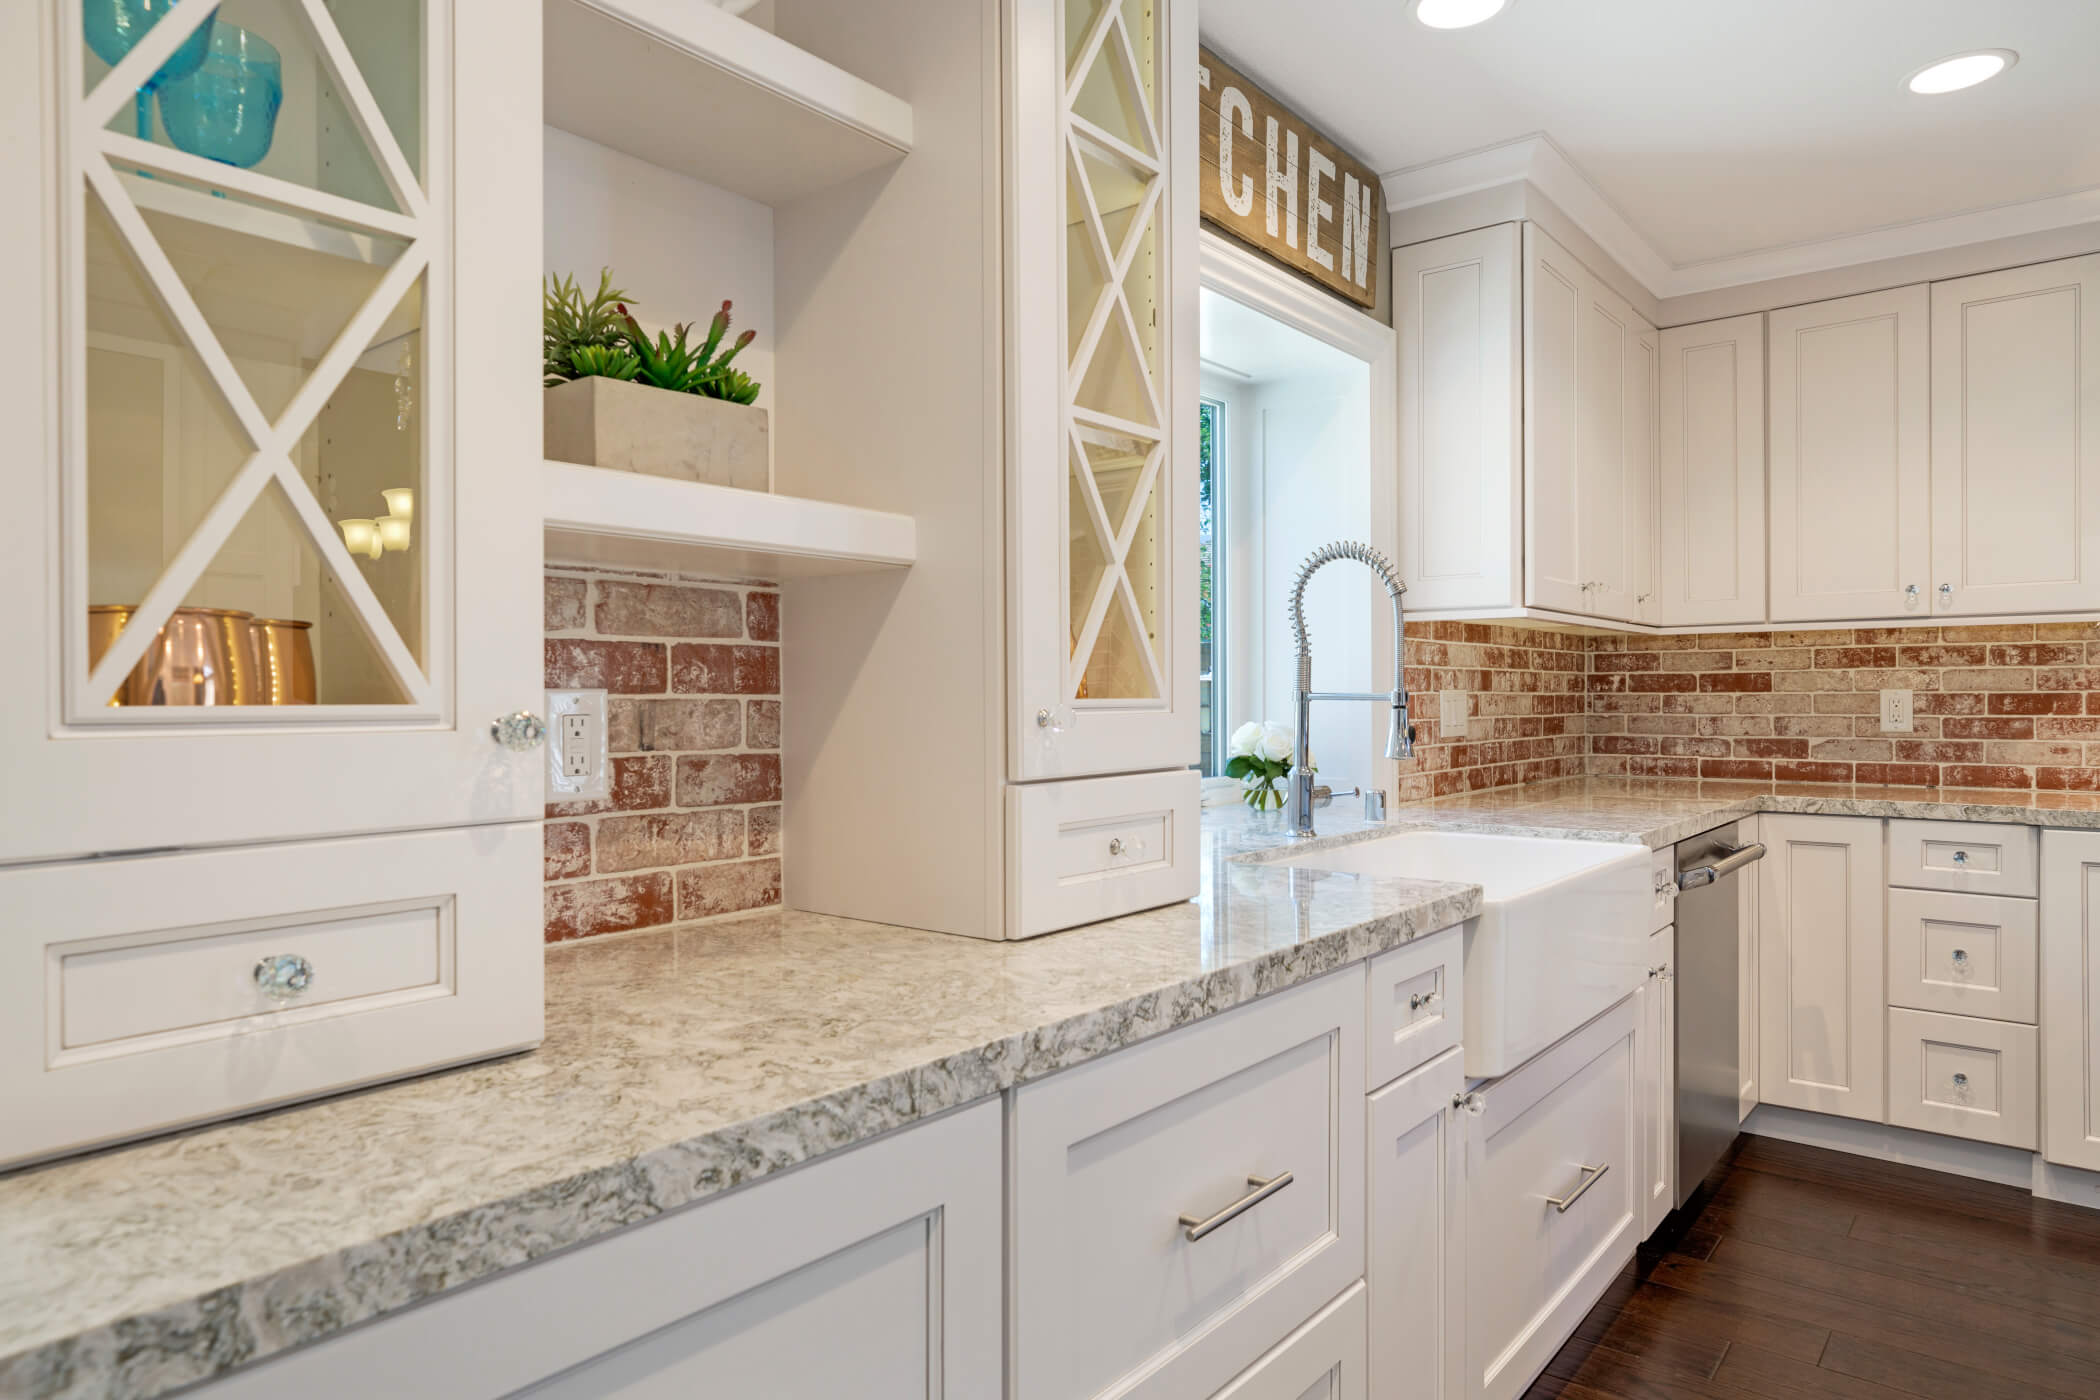 2018 Kitchen Trends: Decorative, Functional Accents